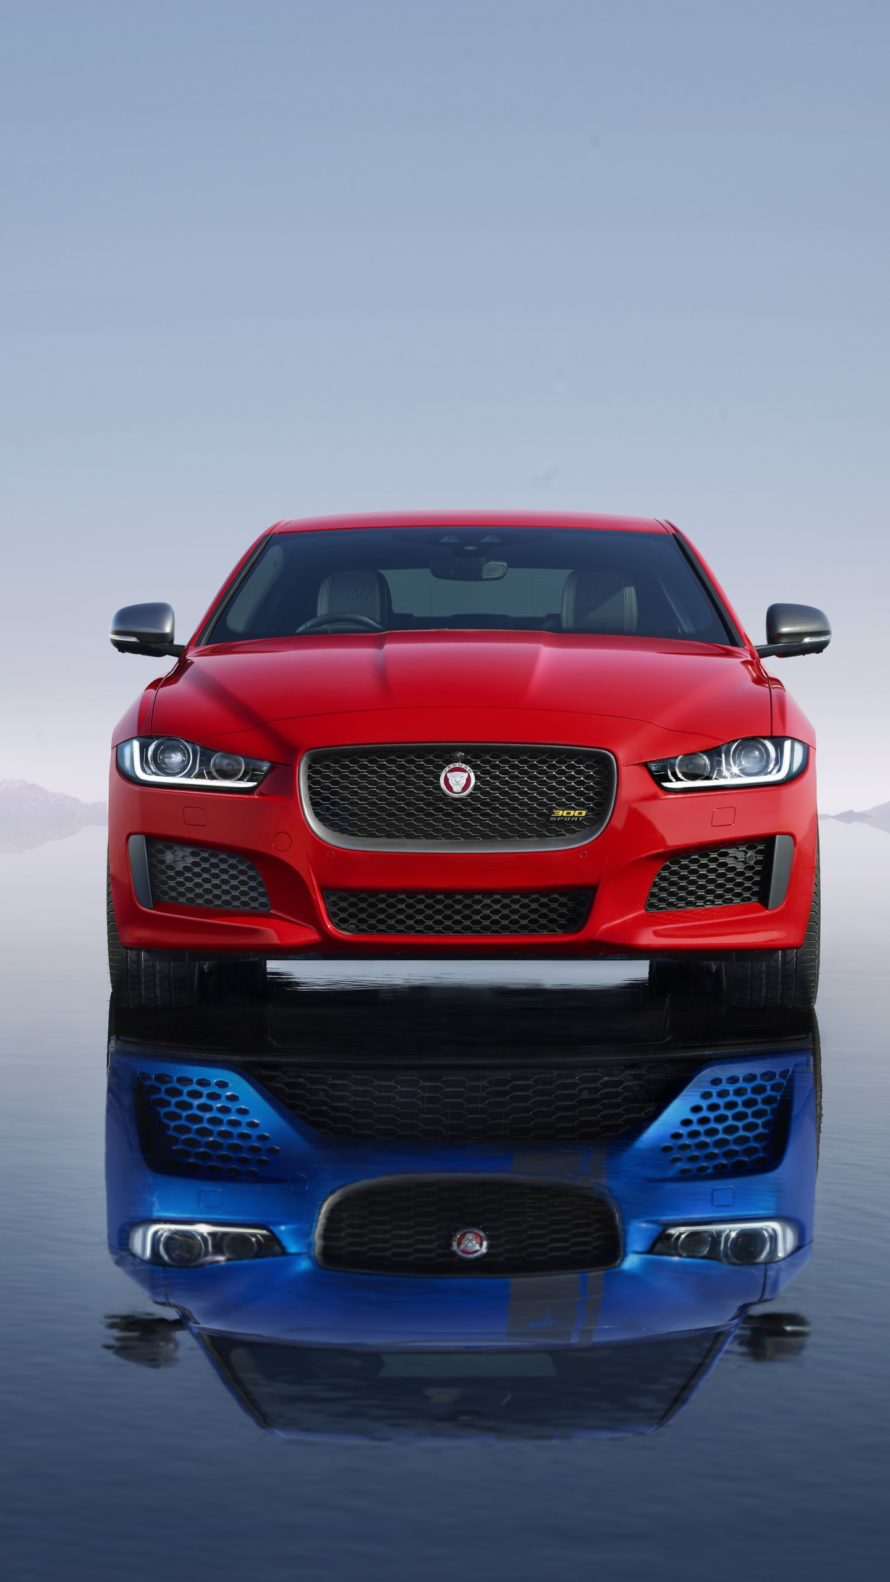 Hd 1920x1080 and 4k uhd 3840x2160 wallpapers mobile and desktop. Jaguar Car Wallpaper Mobile Hd Car Wallpapers For Mobile 890x1582 Download Hd Wallpaper Wallpapertip